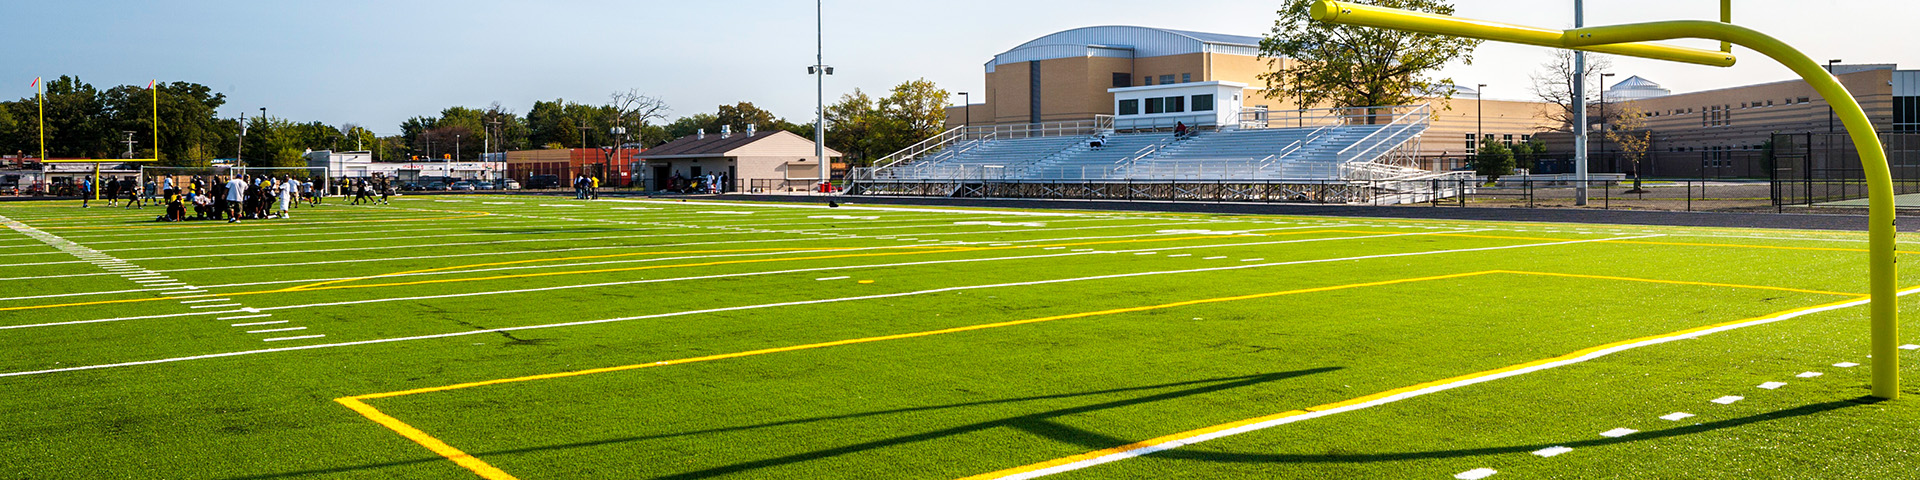 DPS Finney Synthetic Field